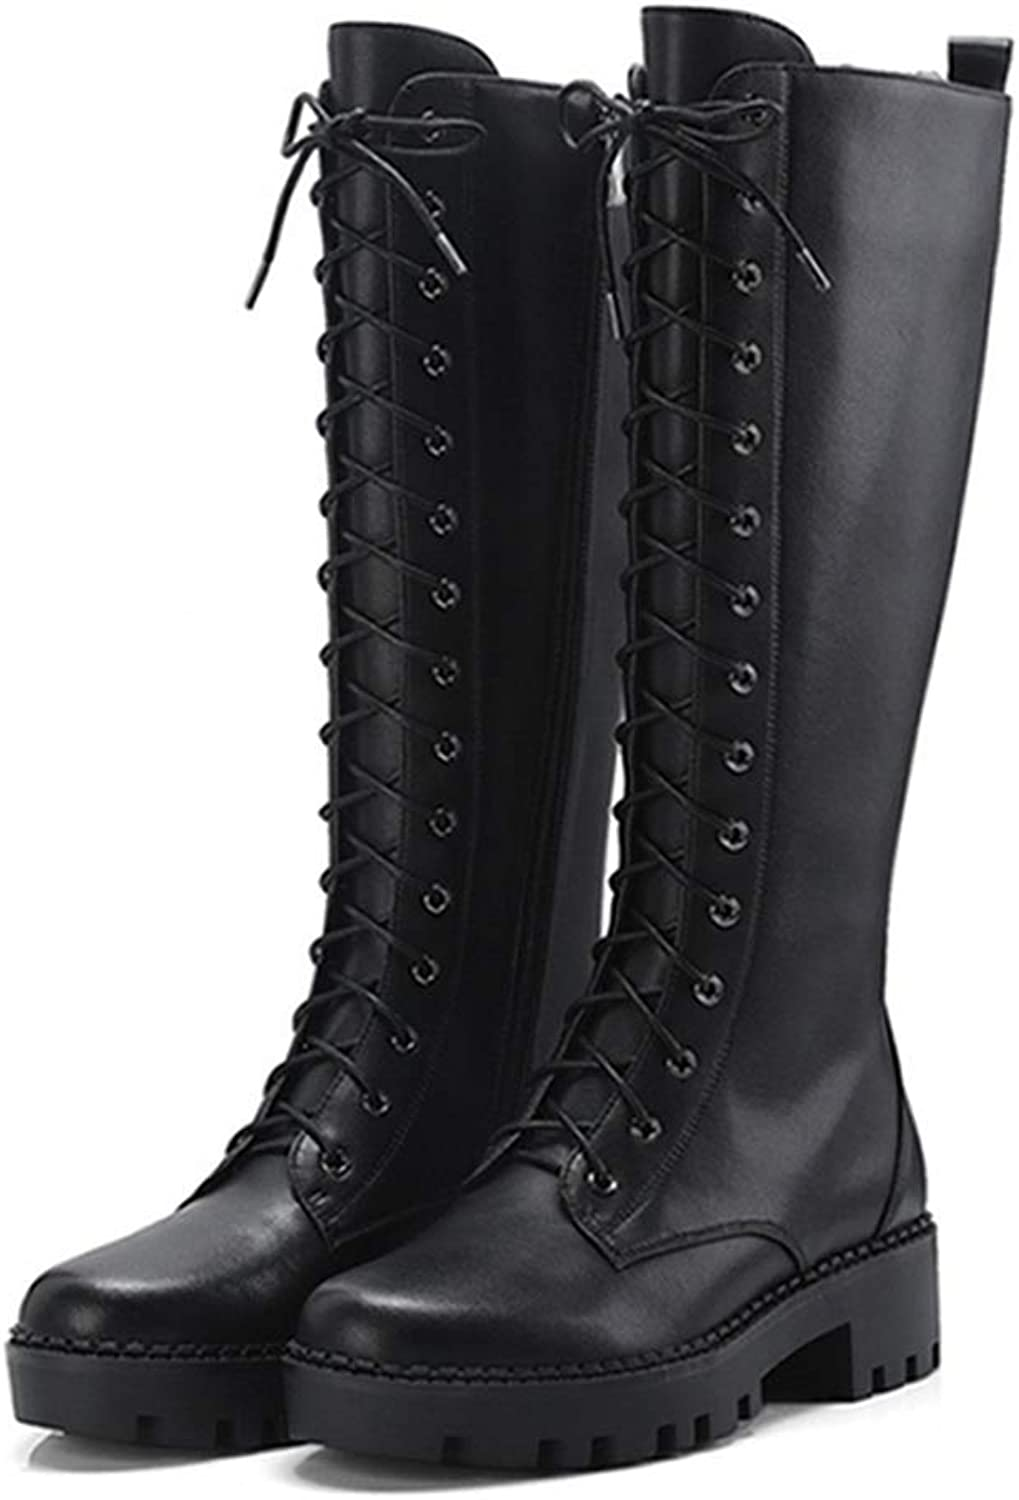 Fay Waters Women's Autumn Winter Genuine Leather Lining Chunky Heel Lace up Knee High Snow Boots